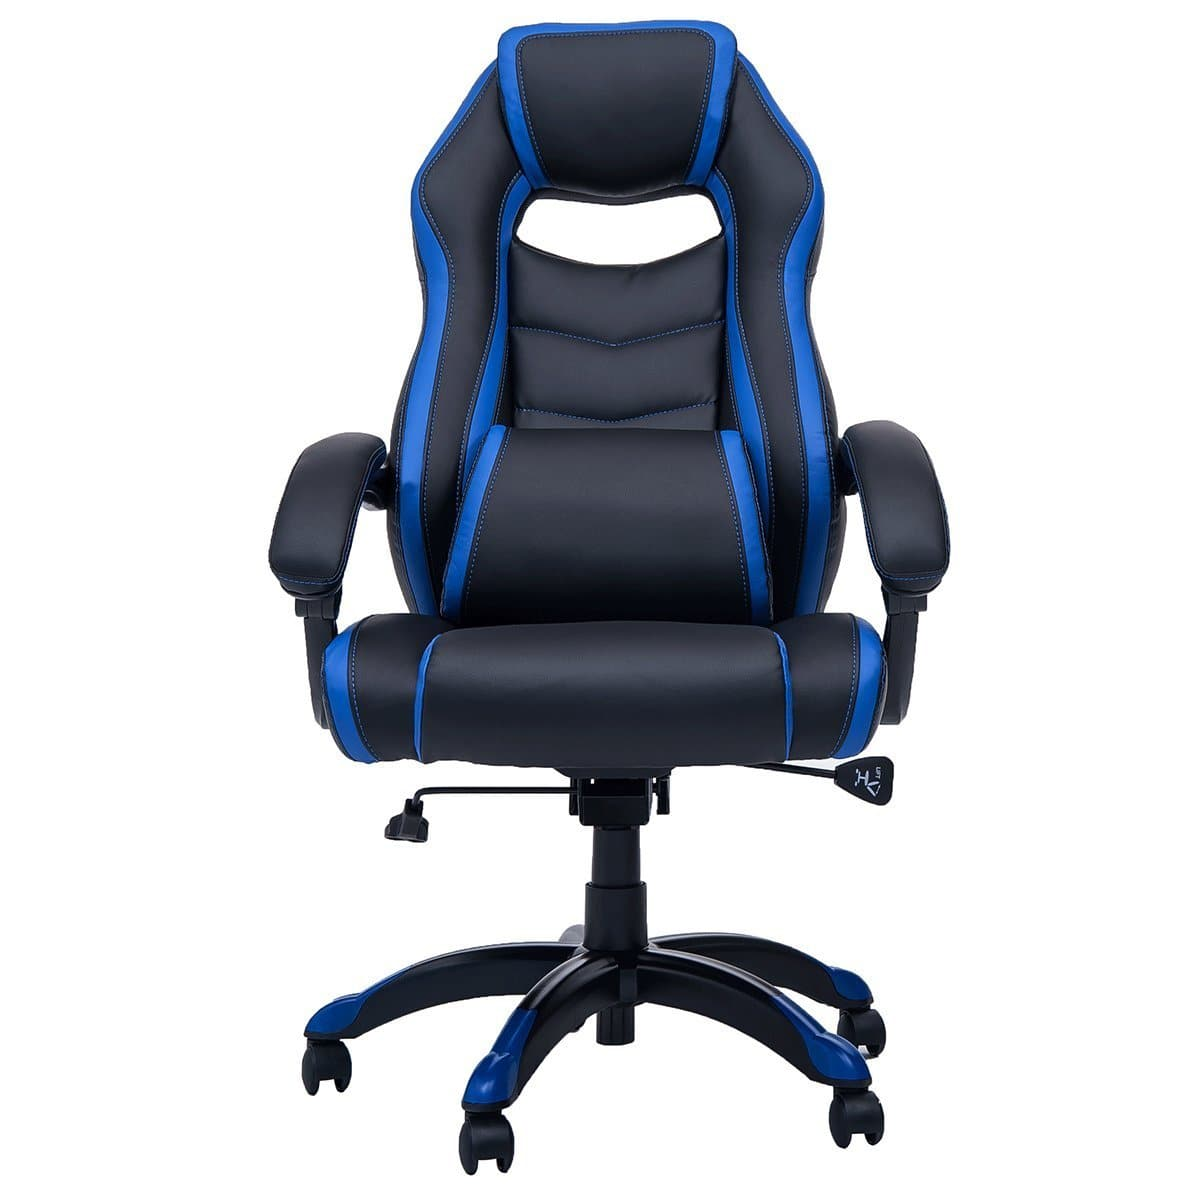 Merax Special Cutting High Back Executive PU Leather Swivel Chair in 3 Colors $100 $99.99